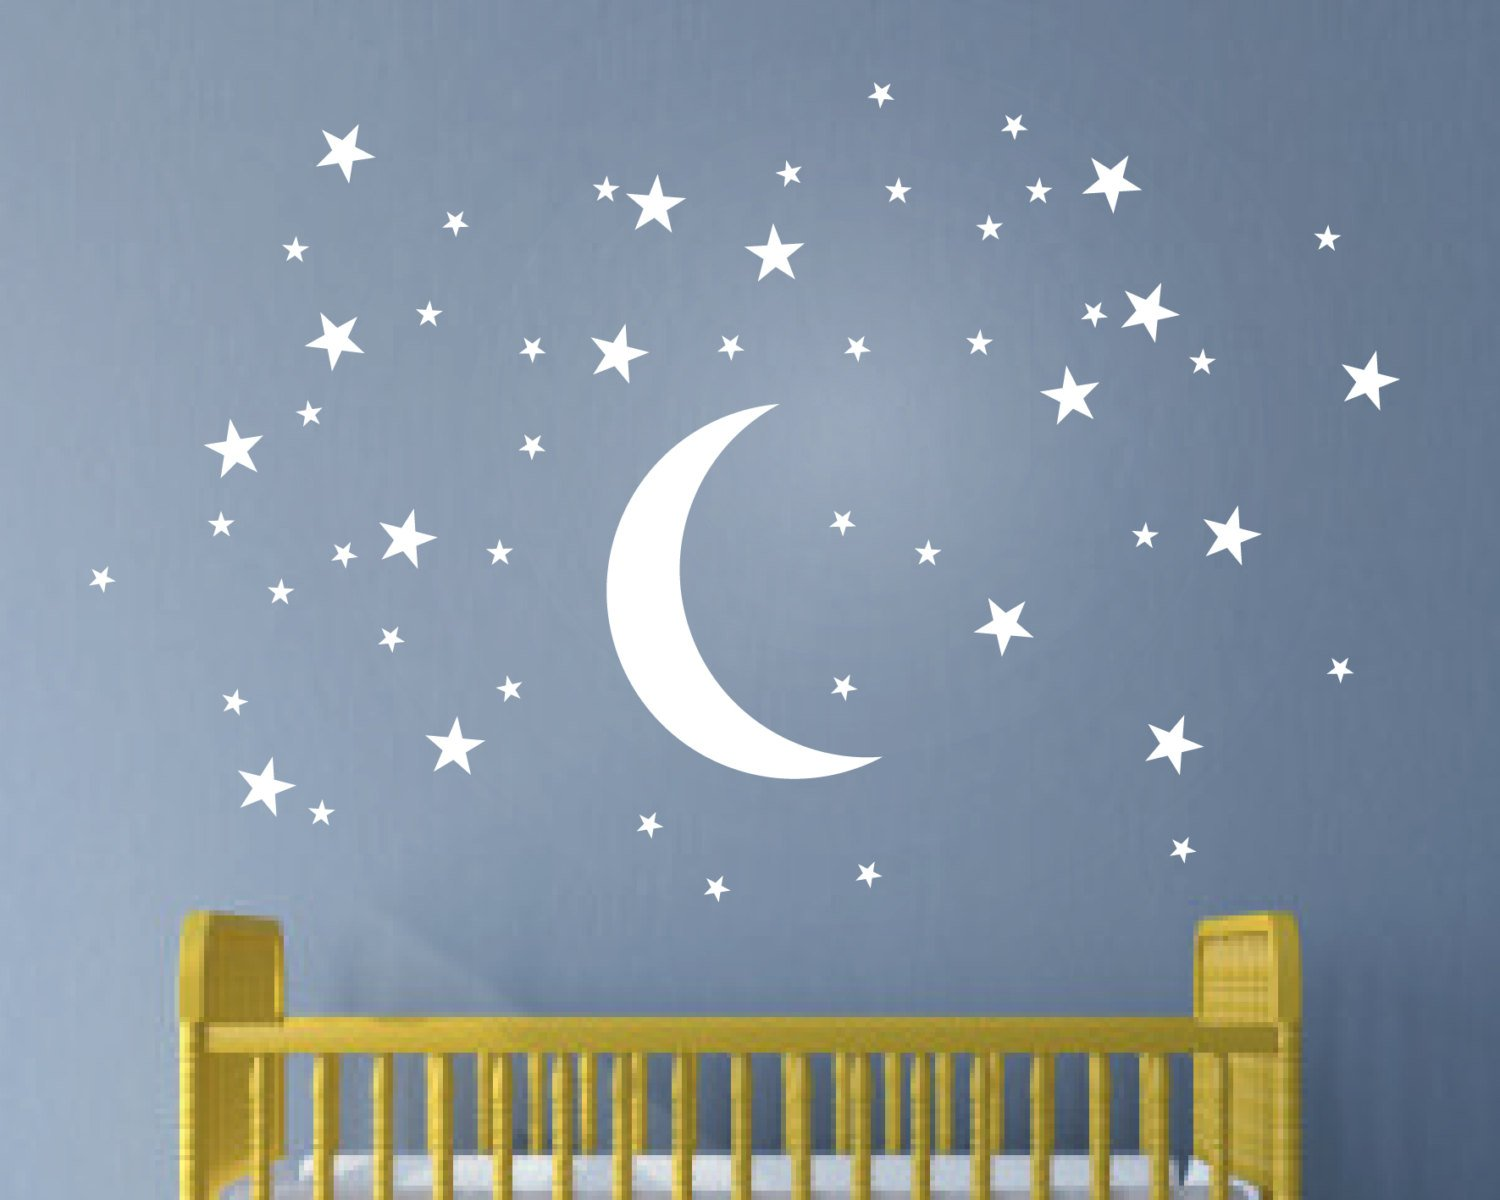 Melissalove 50 Stars and Moon Wall Stickers for Kids Room Creative White Stars Baby Wall Decals Nursery Wall Art Decor Mural Wallpaper D857 (White)